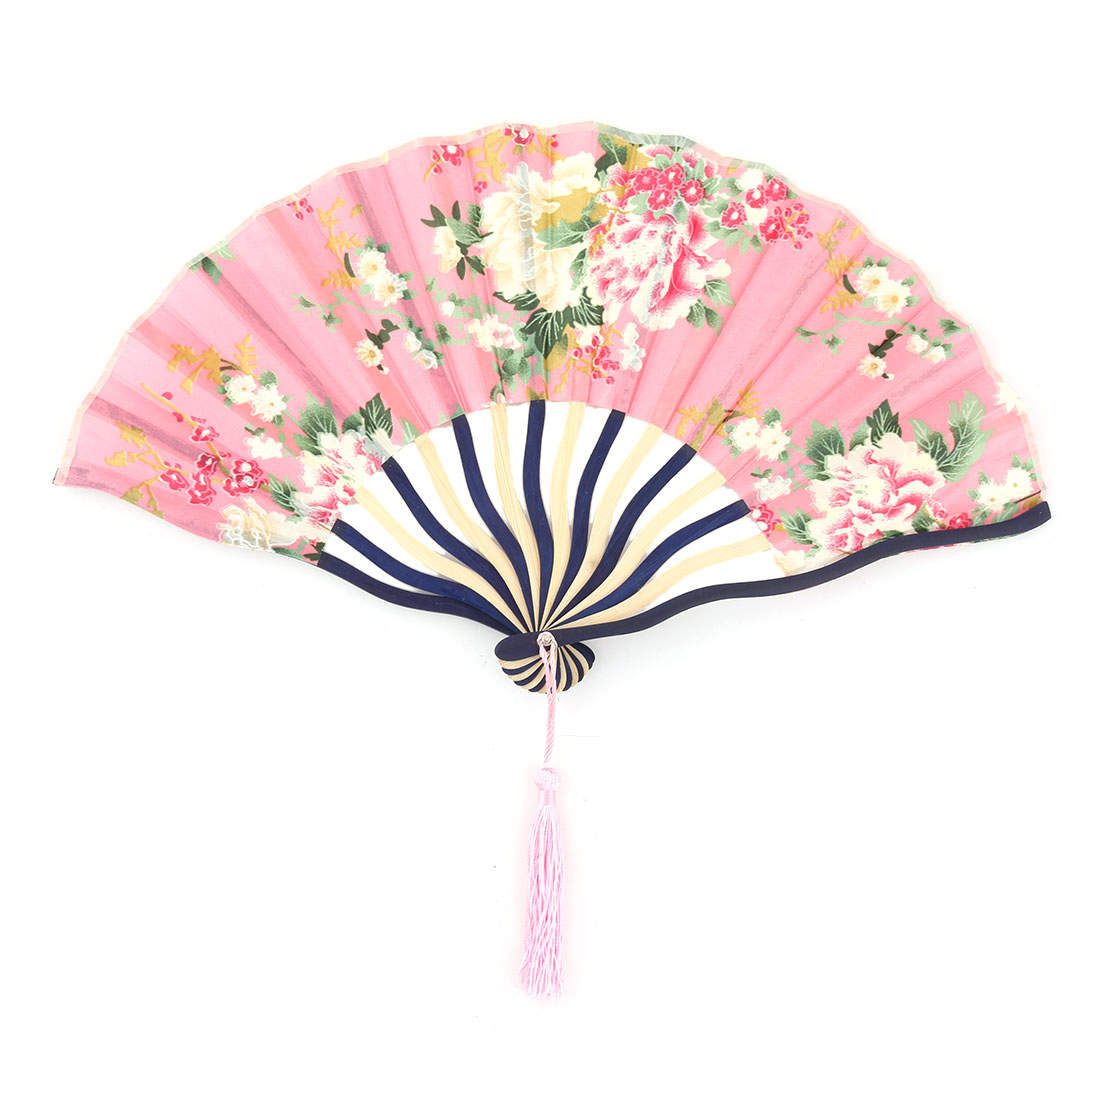 Dancing Bamboo Frame Flower Print Chinese Craft Cooling Foldable Hand Fan Pink